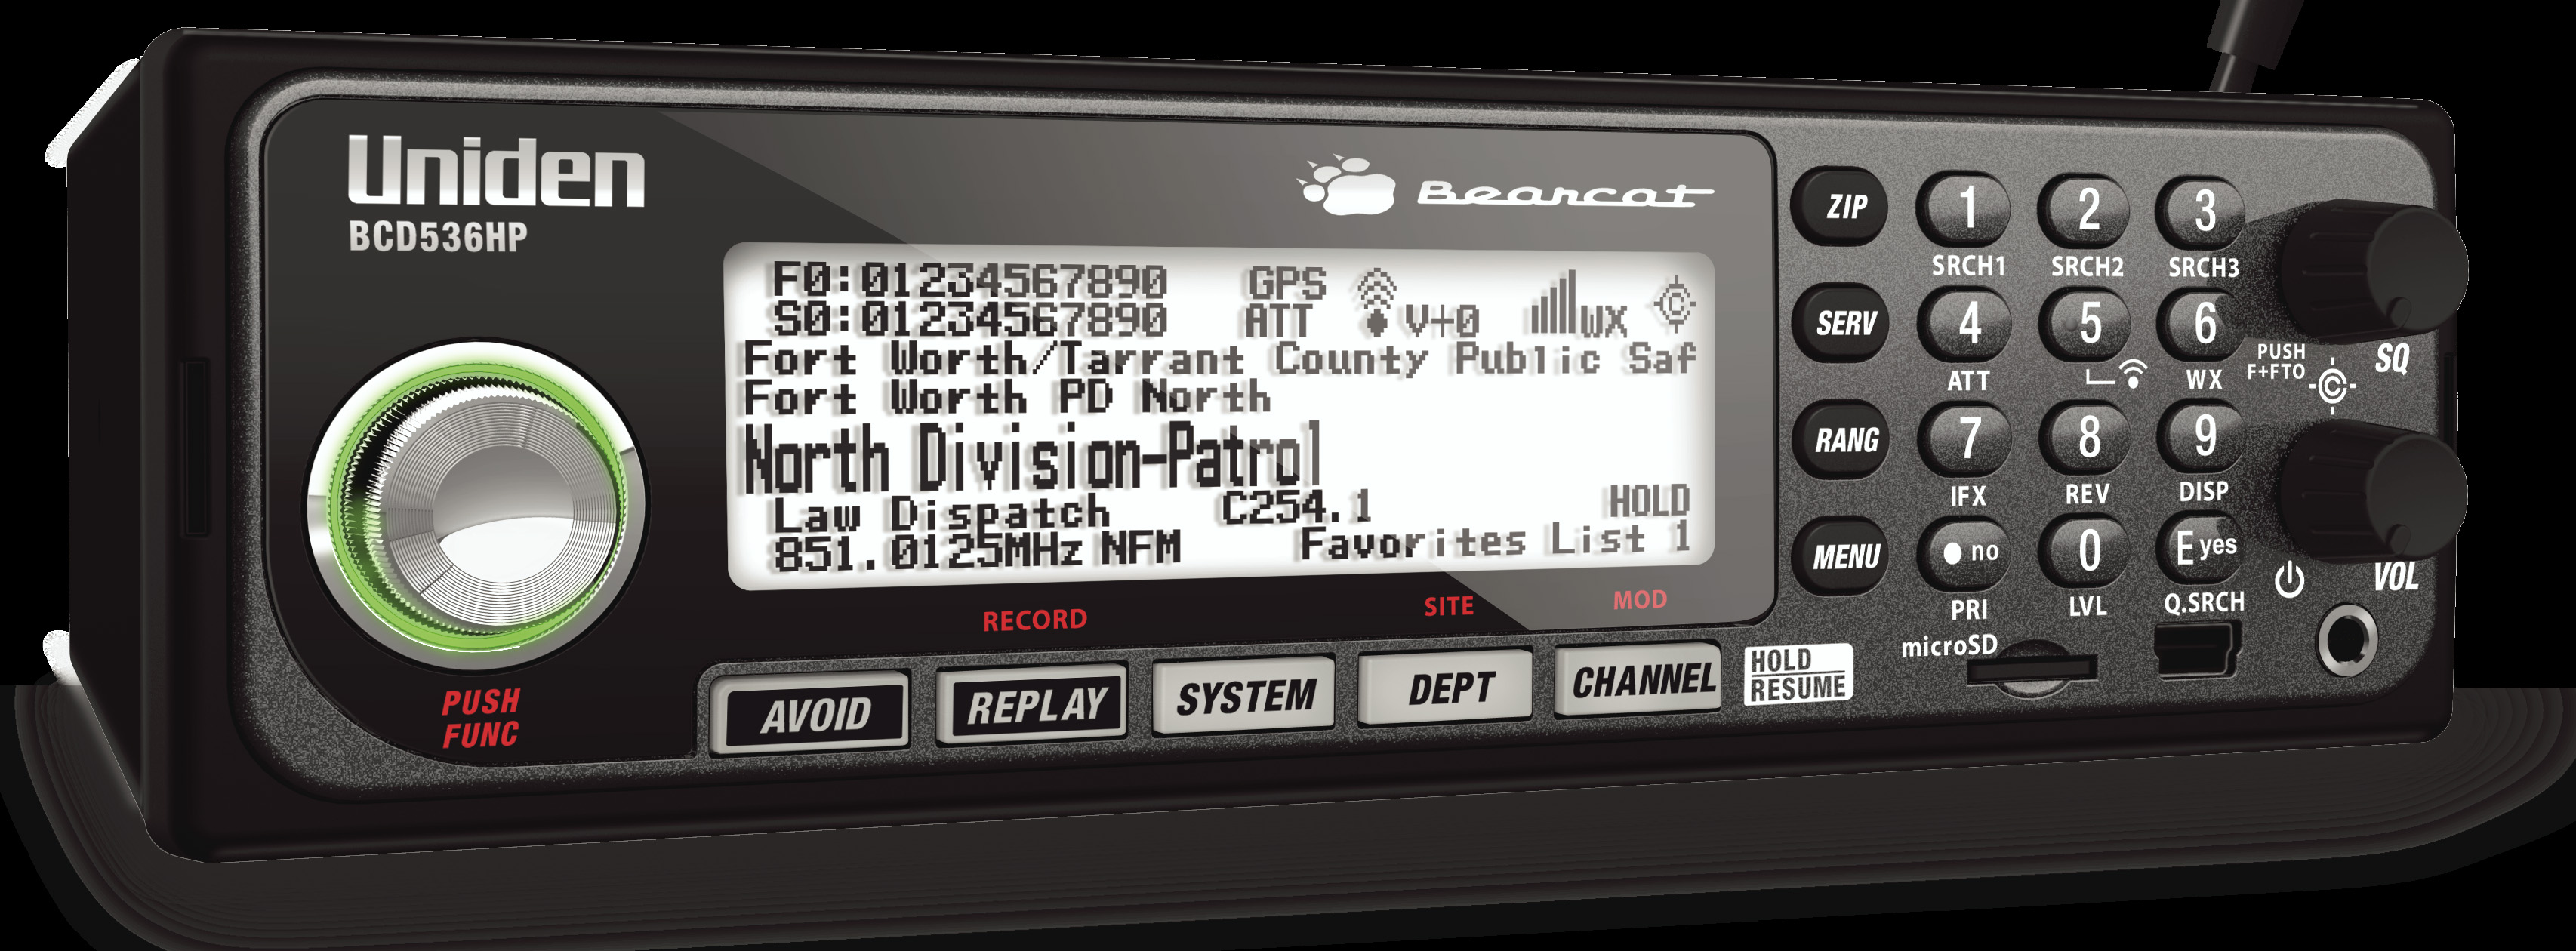 Bcd536hp also Kenwood  5210  5310 together with State College Police Will Have New 12 Million Radio System In Time For State Pattys Day furthermore Best Police Scanner Top Police Scanners Currently In The Market besides 1100 Slimline Corded Phone. on trunked radio scanners